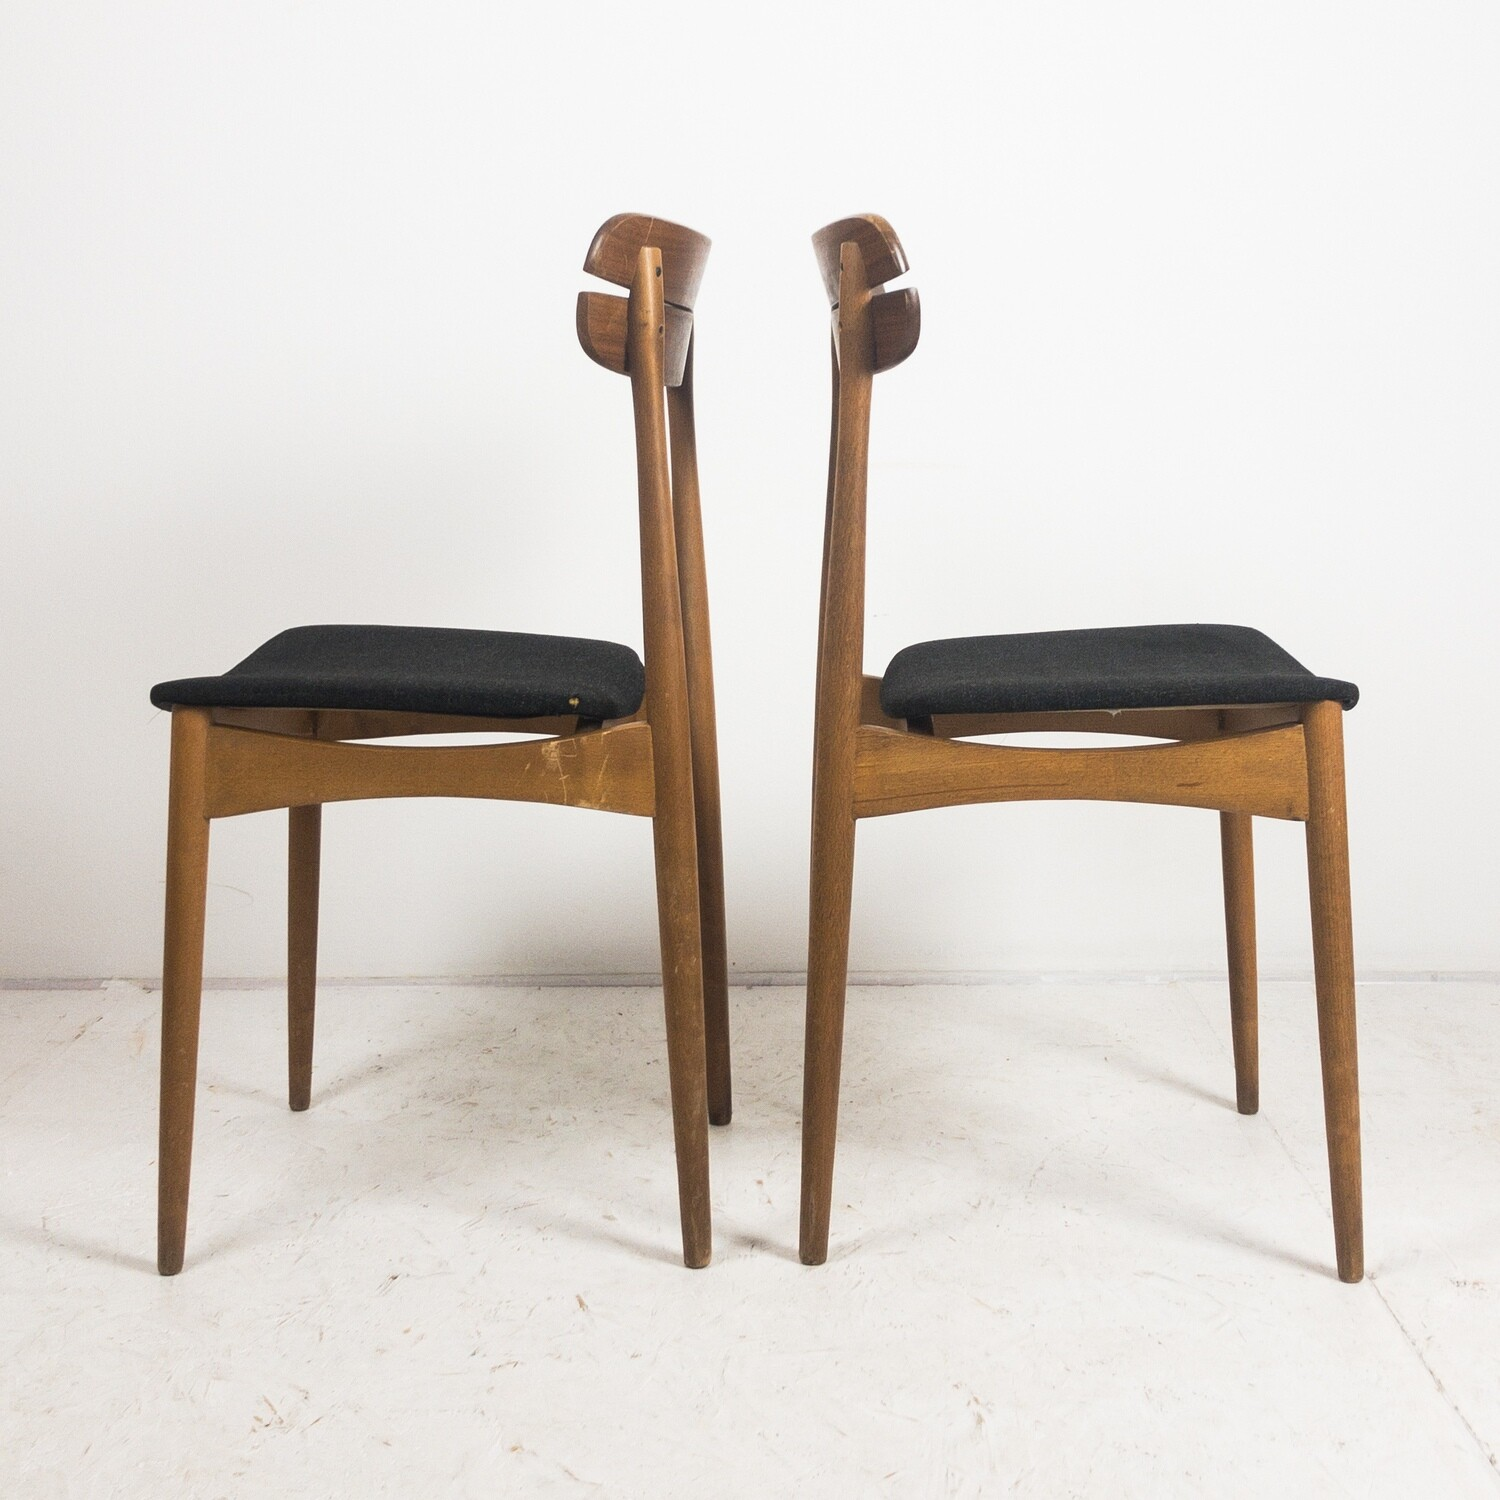 Set of 2 Scandinavian style chairs